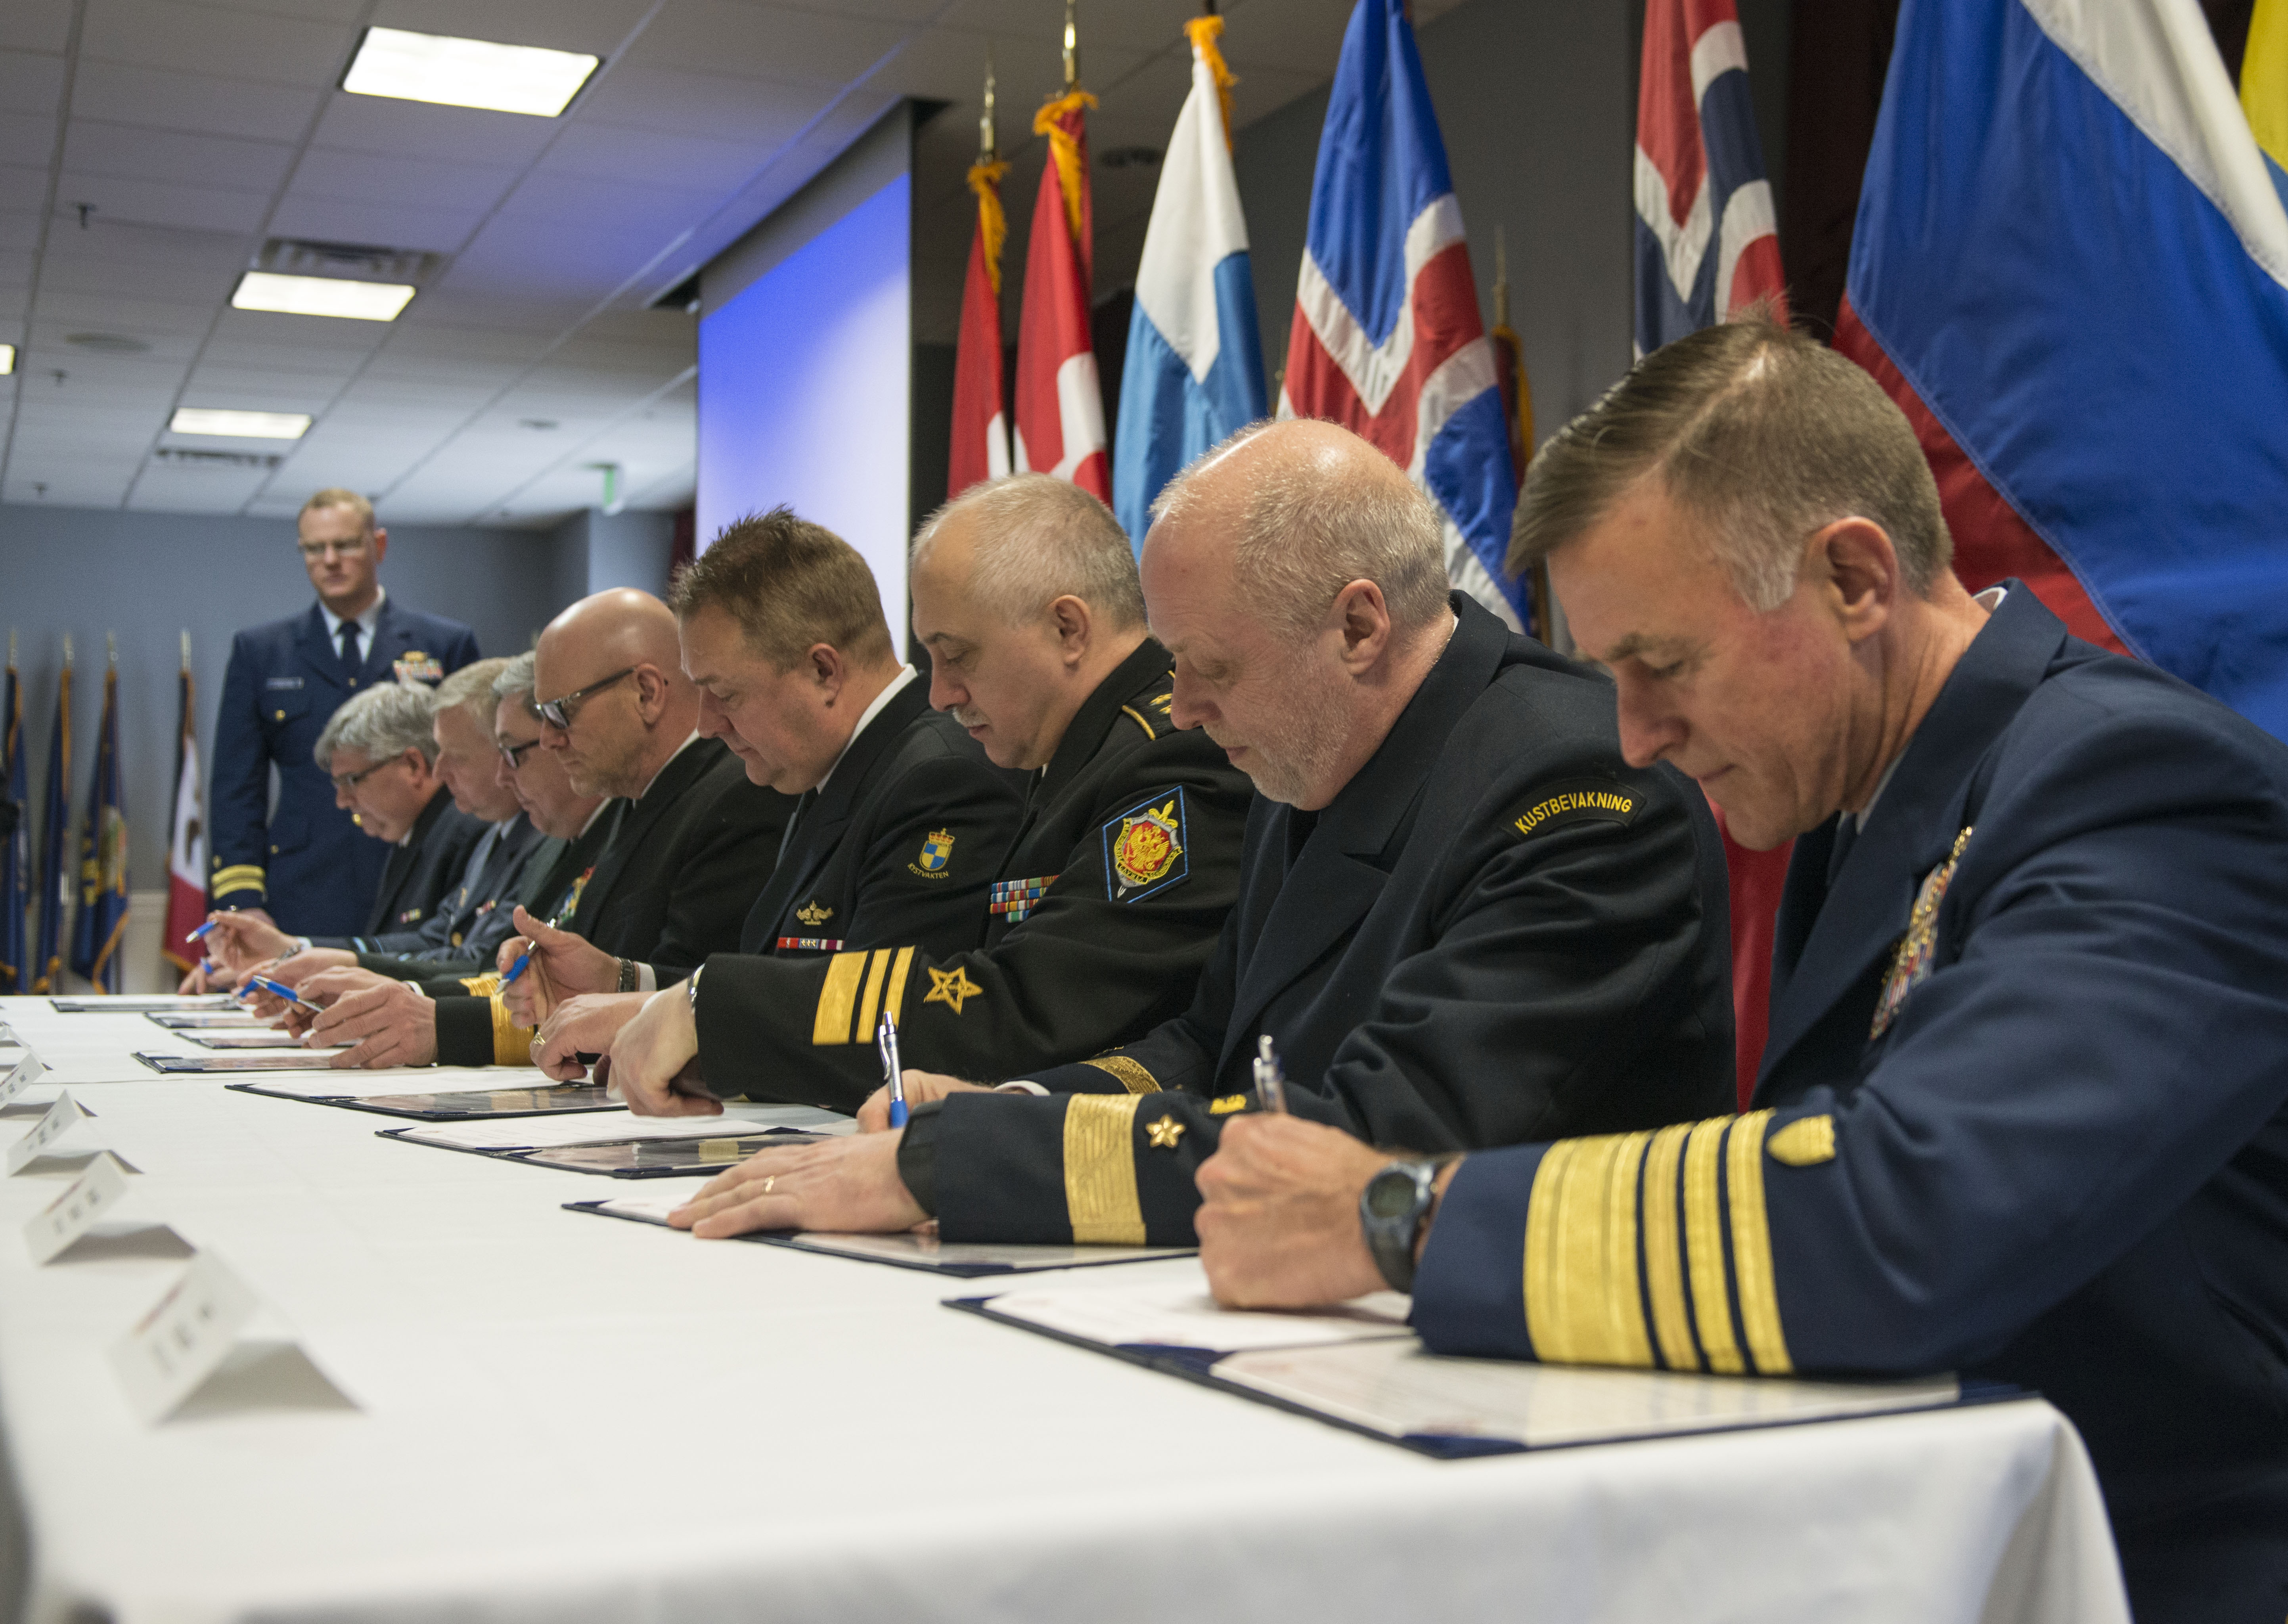 U.S. Coast Guard Commandant Adm. Paul Zukunft joins leaders representing eight coast guard agencies of Arctic nations in signing a joint statement in Boston, Friday, March 24, 2017. The statement adopts doctrine, tactics, procedures and information-sharing protocols for emergency maritime response and combined operations in the Arctic. (Petty Officer 2nd Class Cynthia Oldham / U.S. Coast Guard)